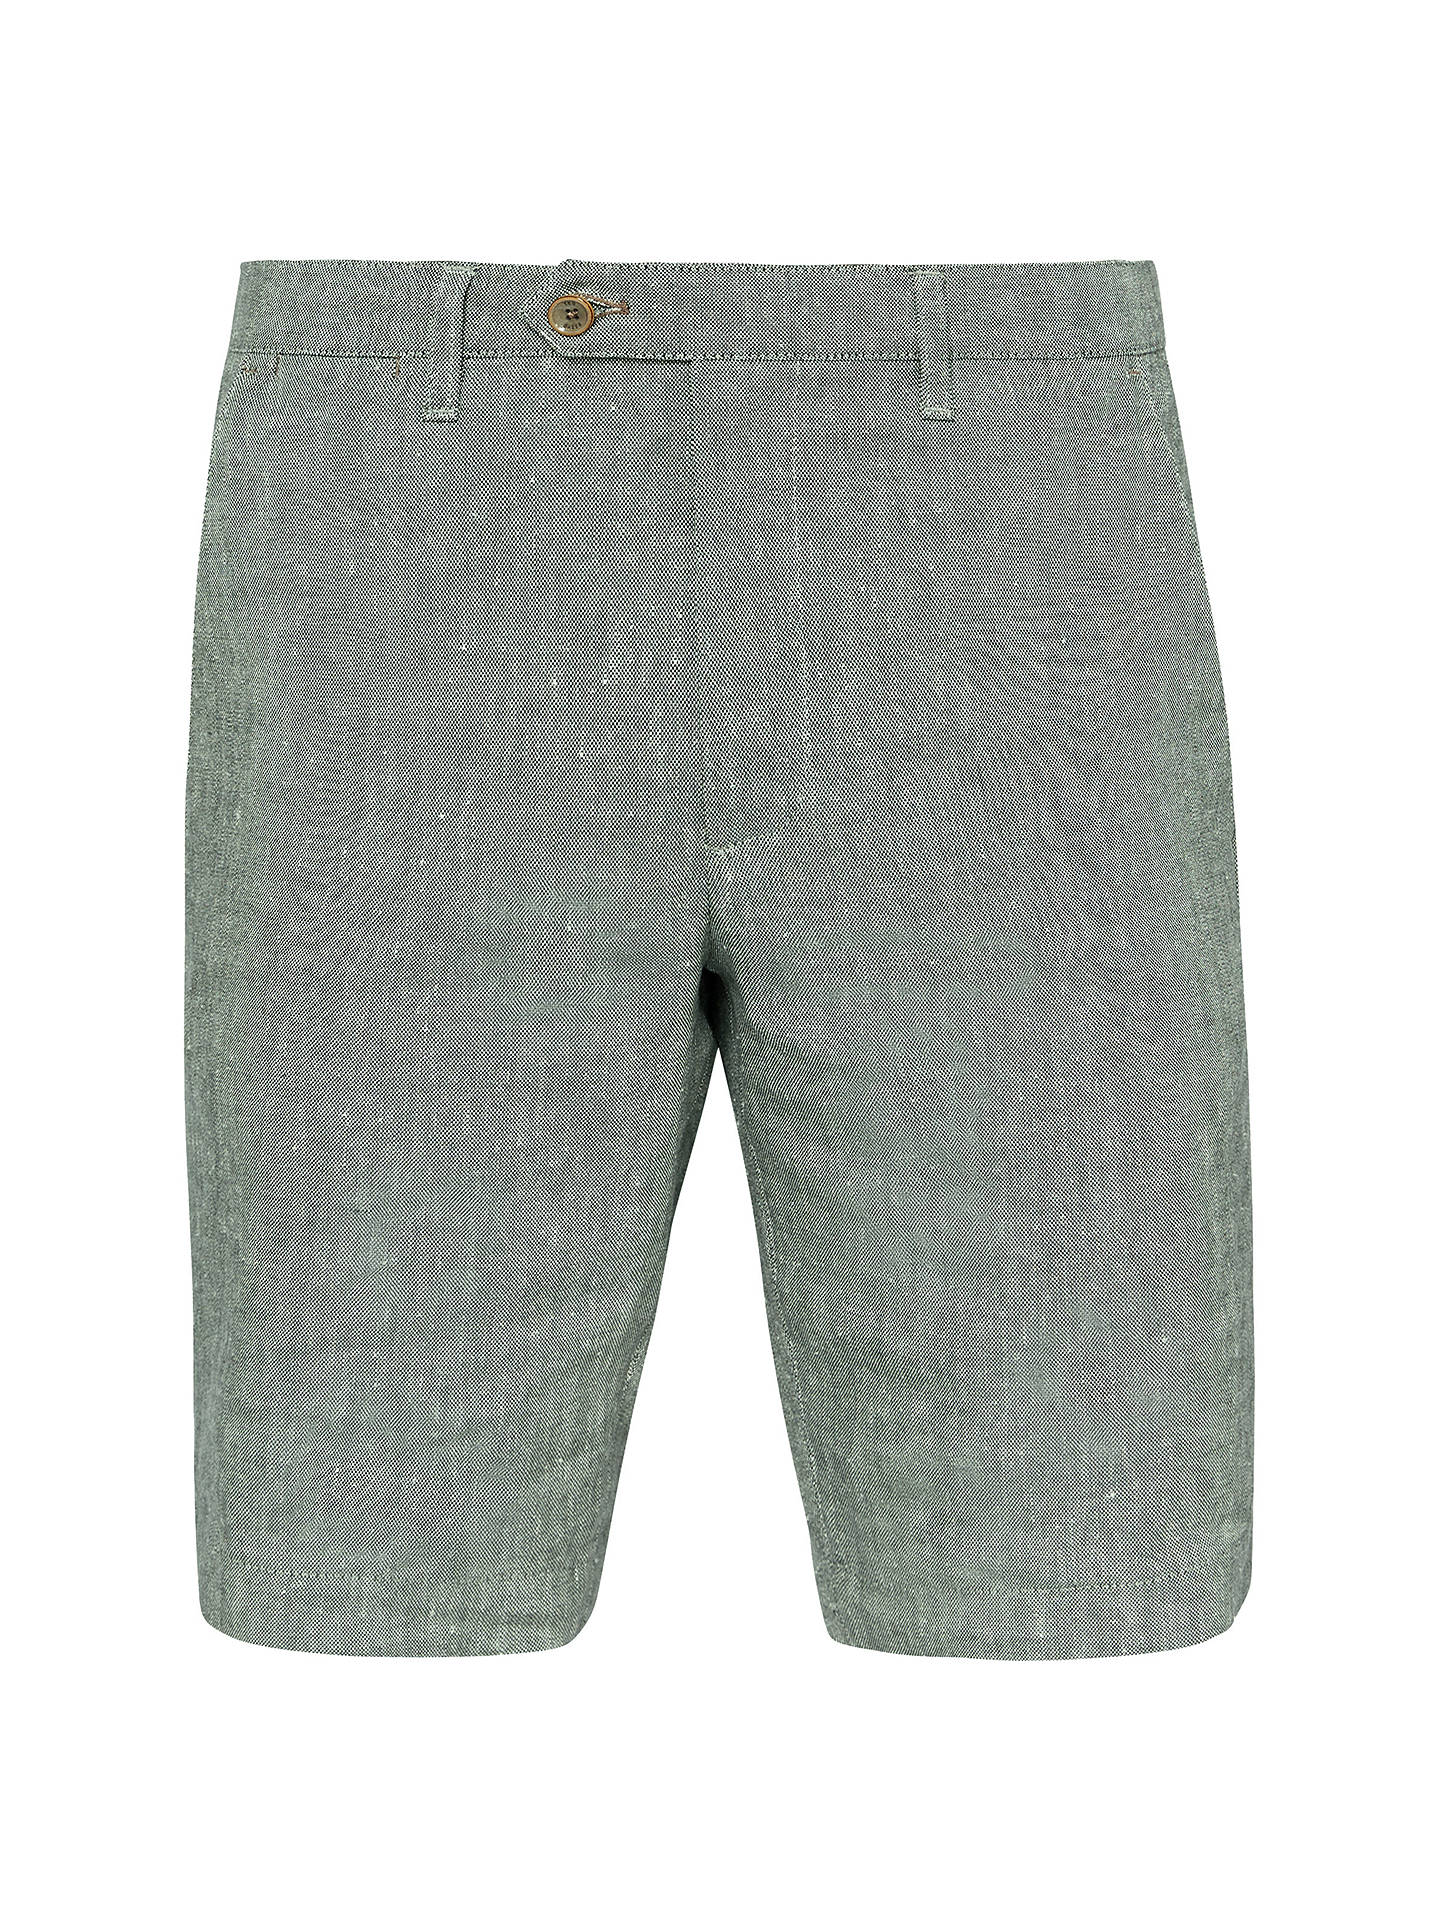 Buy Ted Baker Newshow Slim Fit Shorts, Green, 30R Online at johnlewis.com